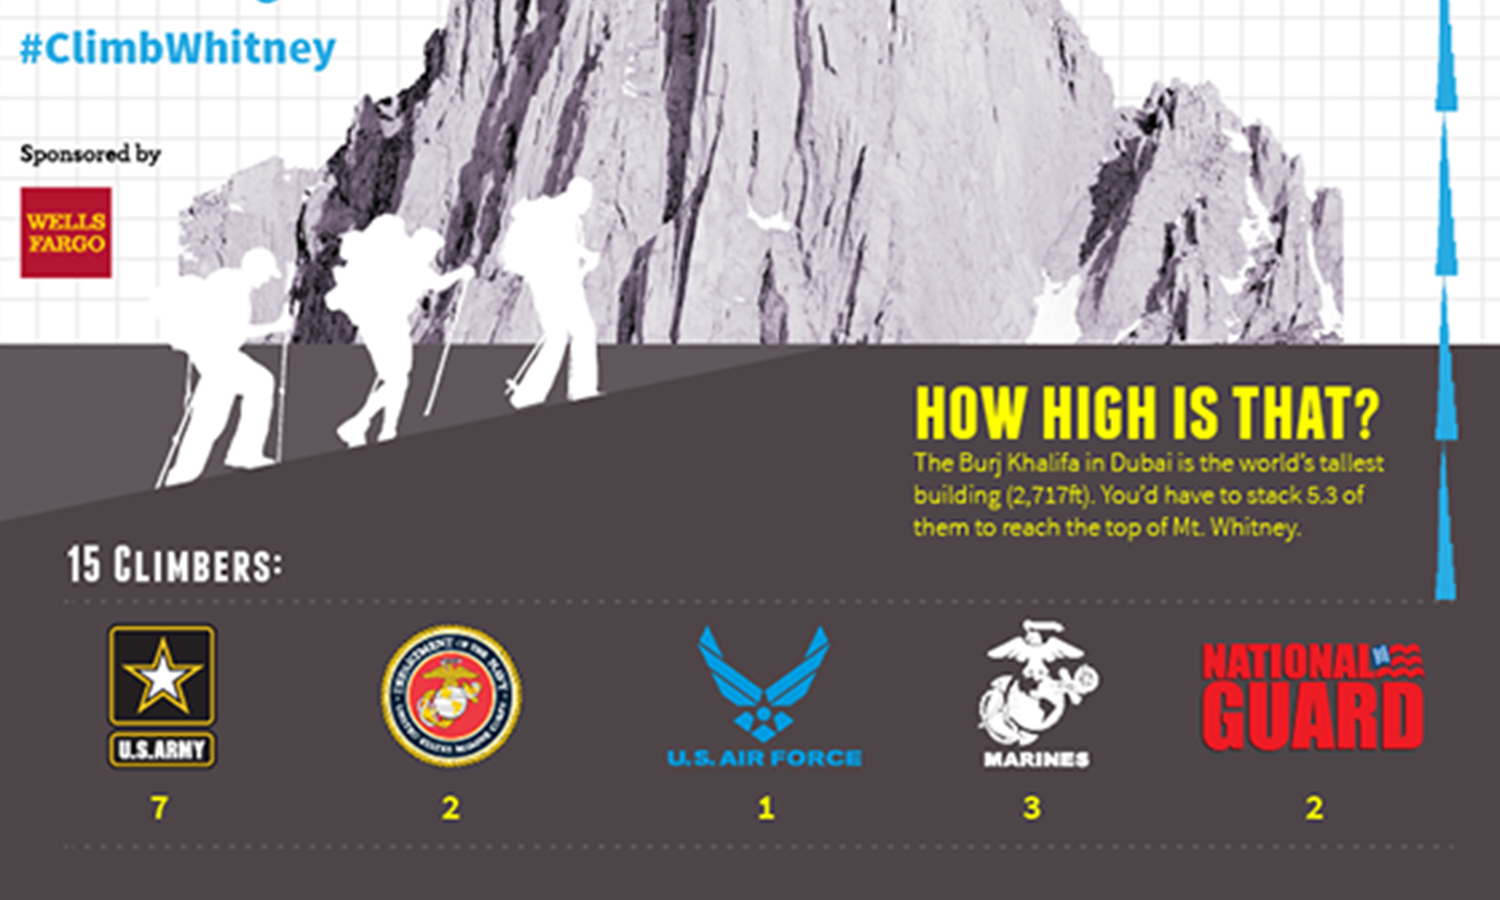 Infographic showing military branch breakdown of the team